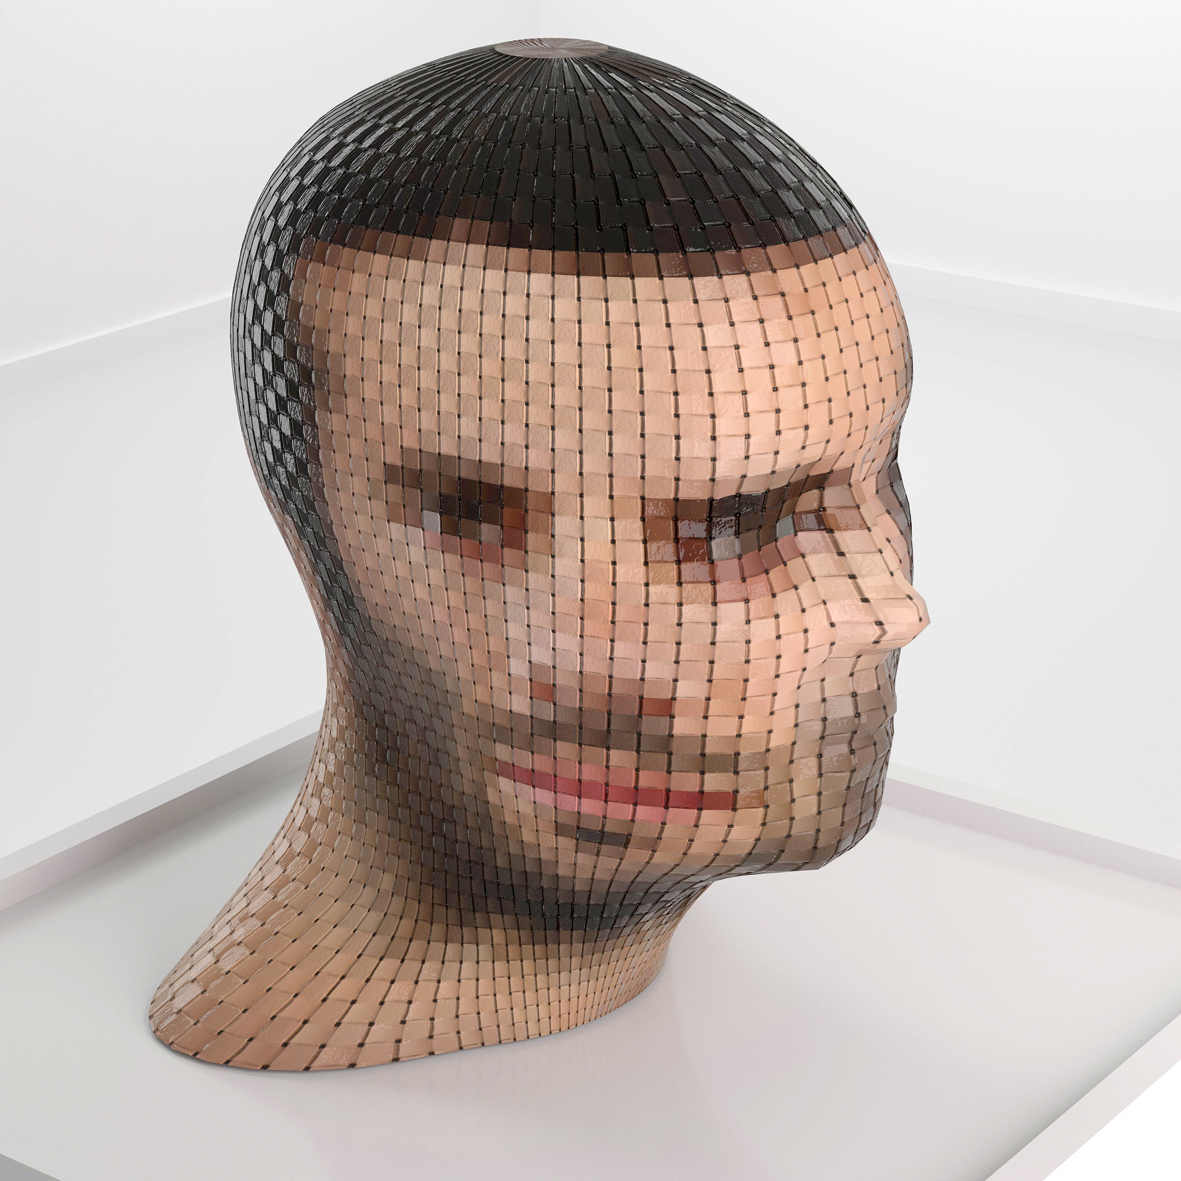 Head-Twisting Woven Sculptures Put a New Face on Art